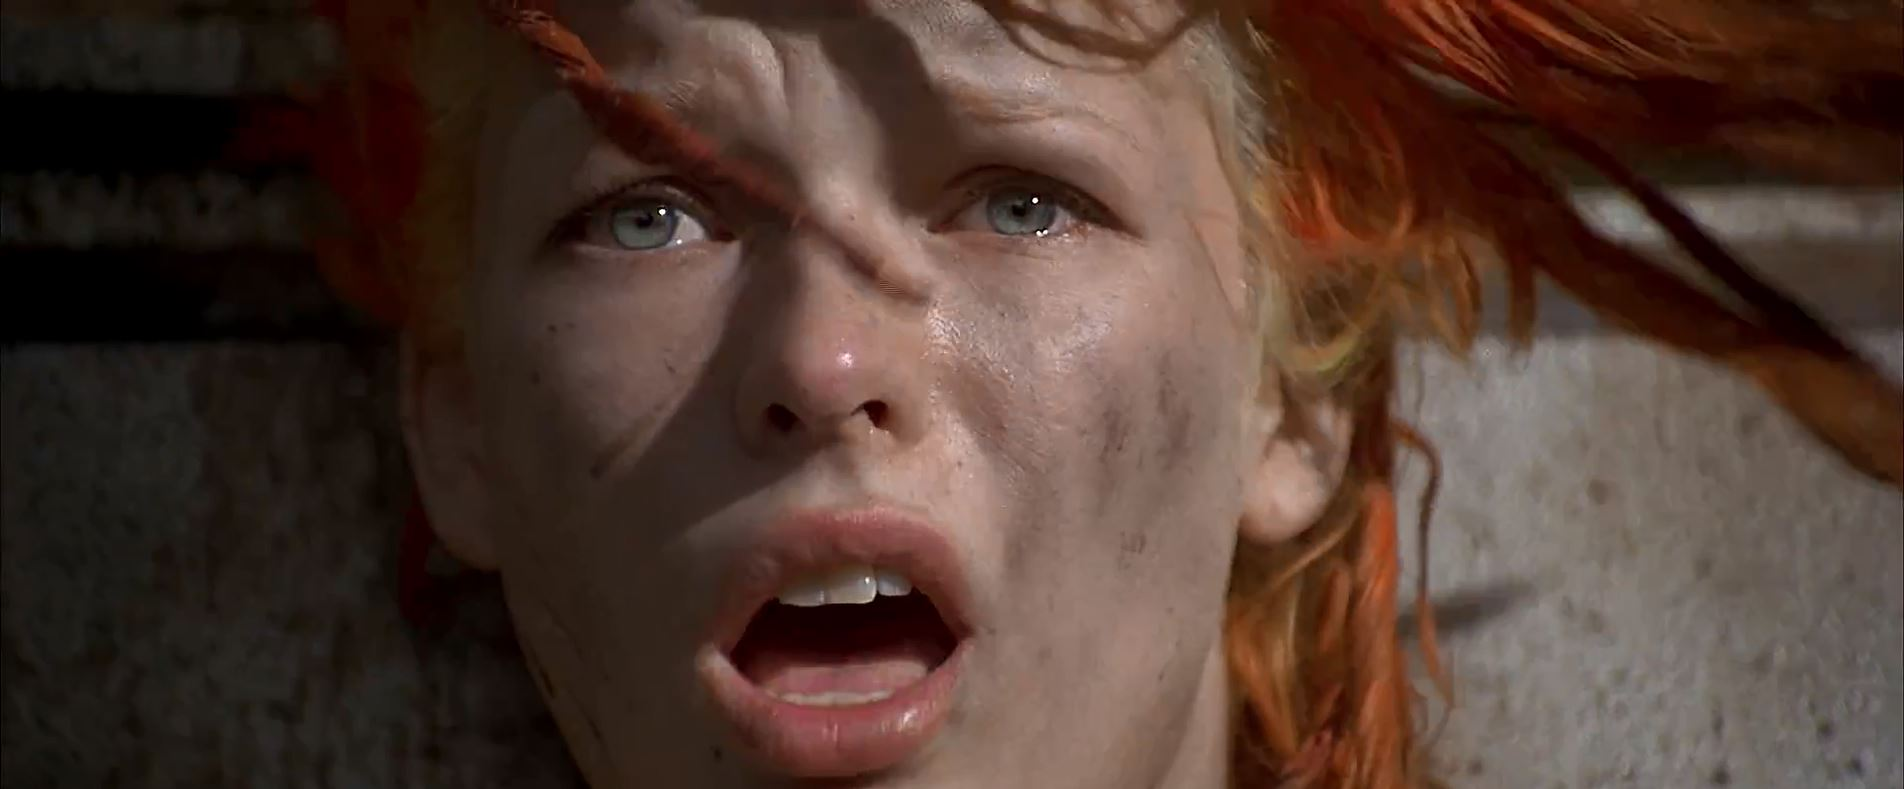 Leeloo's hair in the wind - The Fifth Element